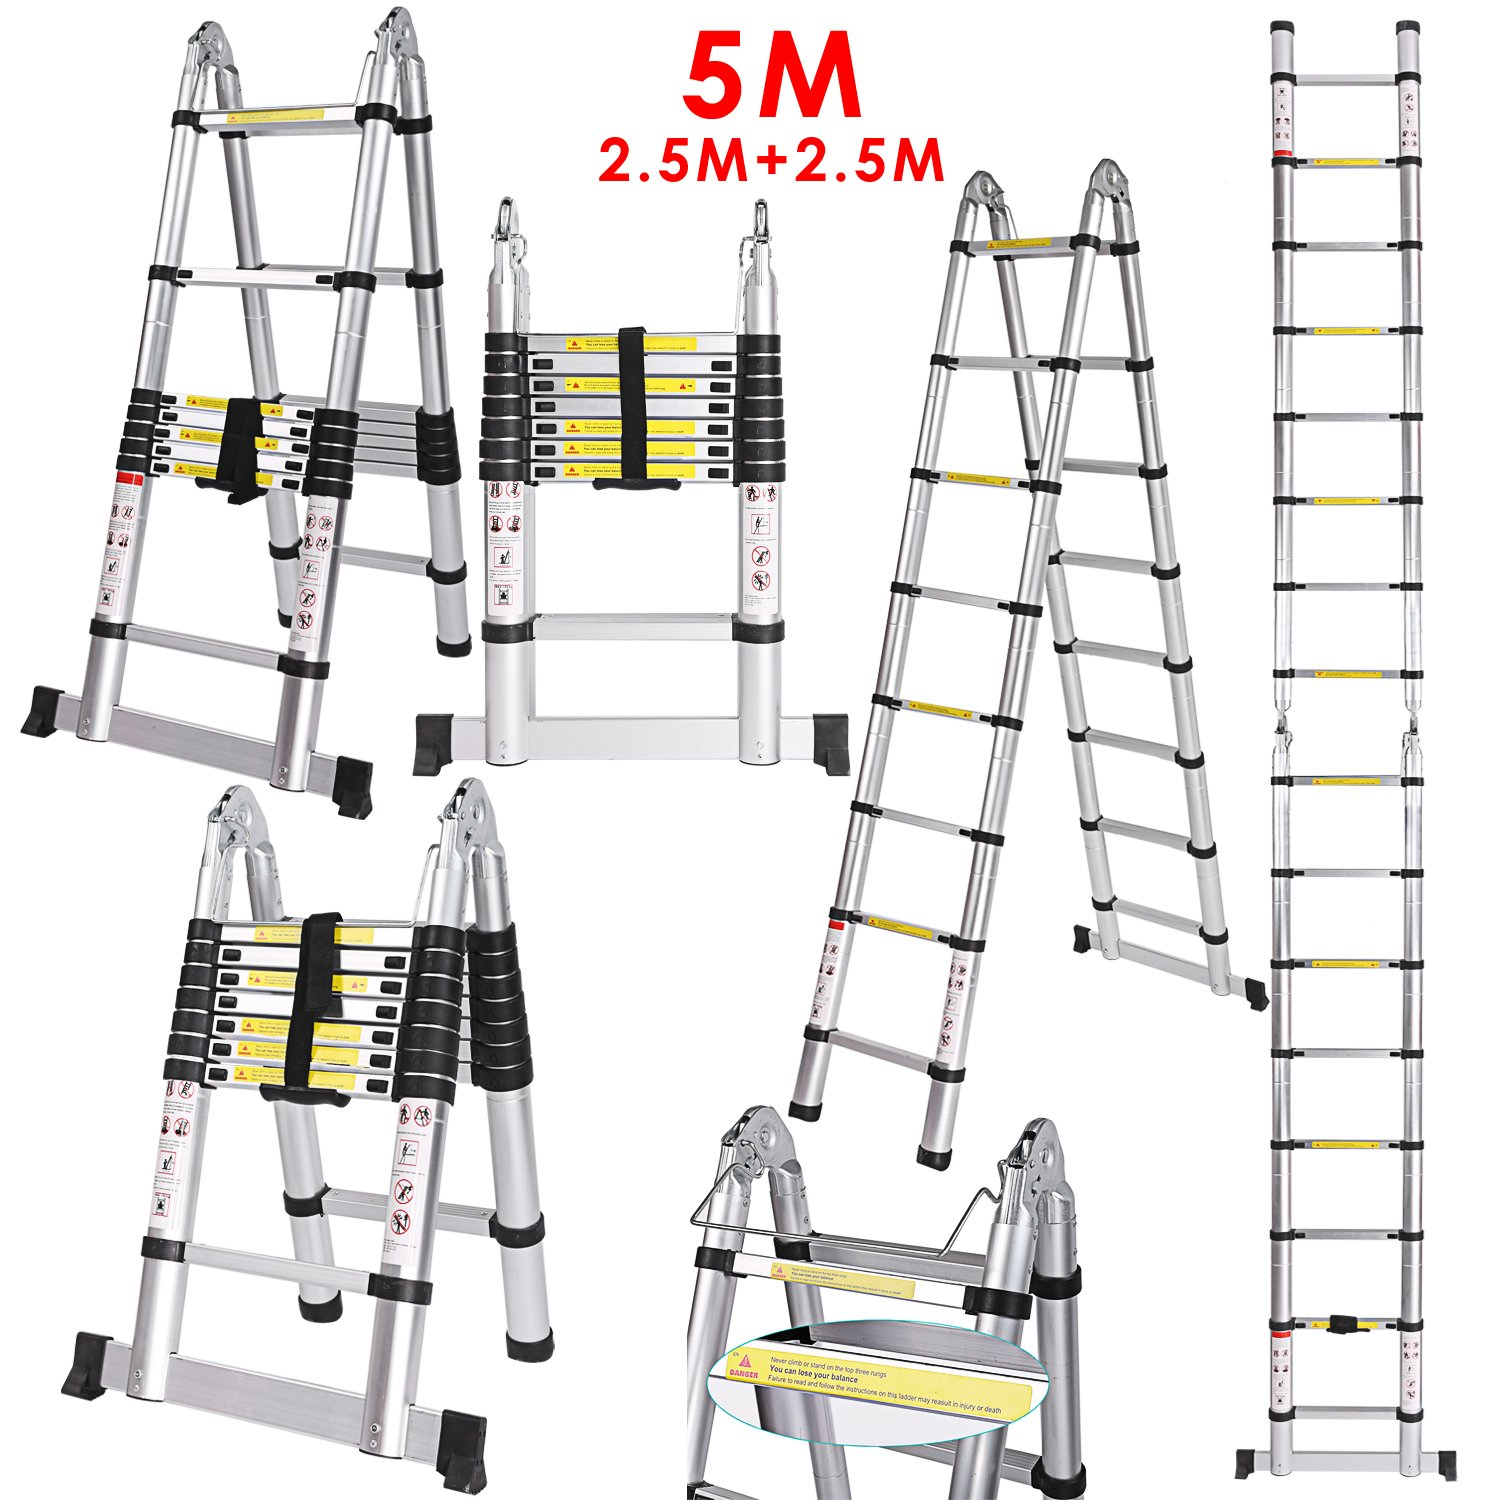 Busyall 5M Telescopic Ladder Aluminum Telescopic Ladder Tall Multi Purpose Heavy Duty Max 330 lbs (16.4FT)